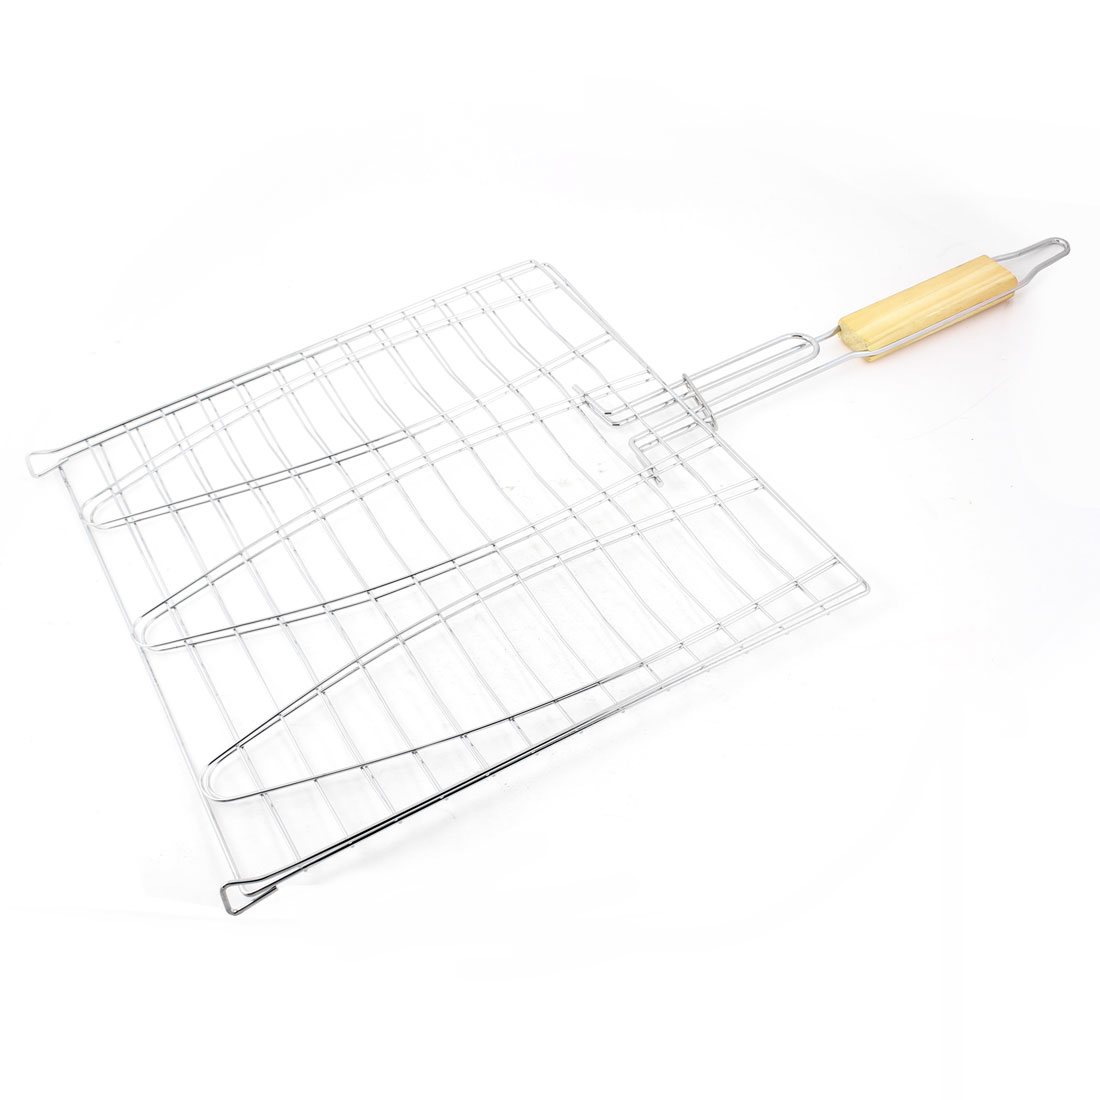 Outdoor Gamping Backyard Cooking Grilling Barbecue Net Basket 28cm x 28cm